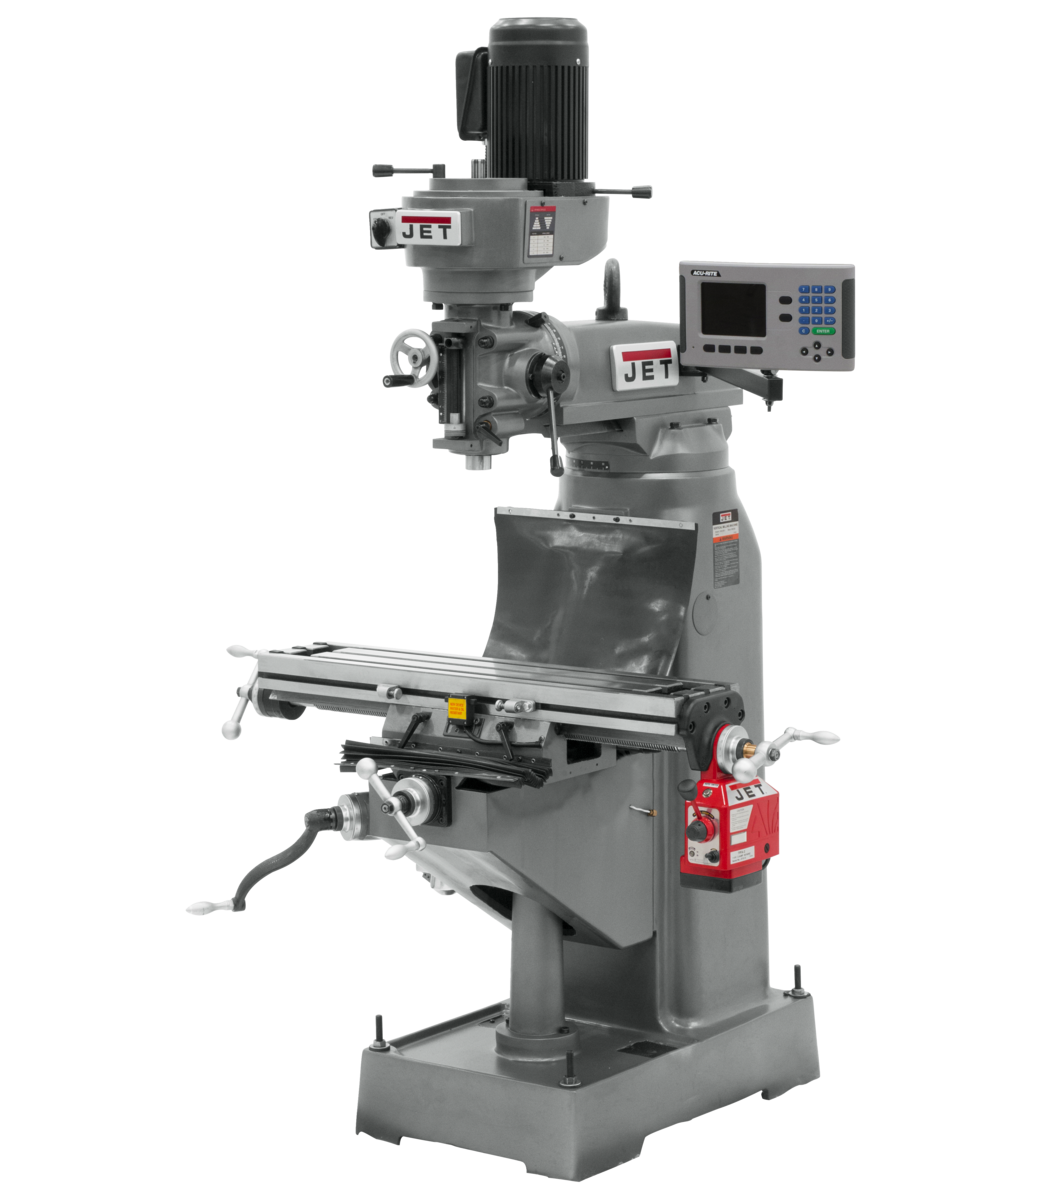 JVM-836-3 Mill With 3-Axis ACU-RITE 203 DRO (Knee) With X and Y-Axis Powerfeeds